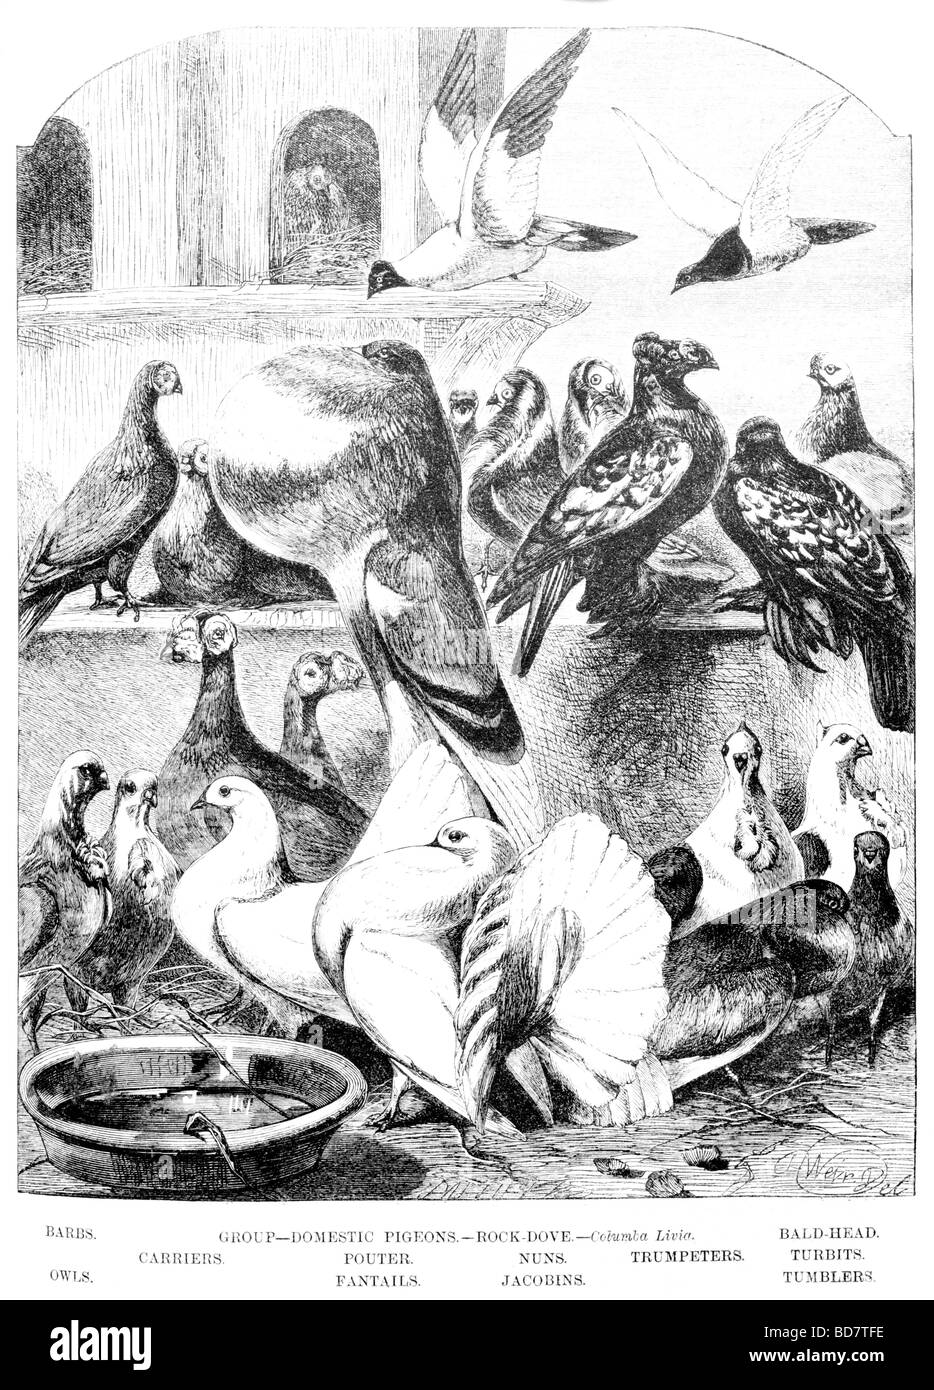 domestic pigeons rock dove columba livia barbs bal head carriers pouter nuns trumpeters turbits owls fantails jacobins Stock Photo